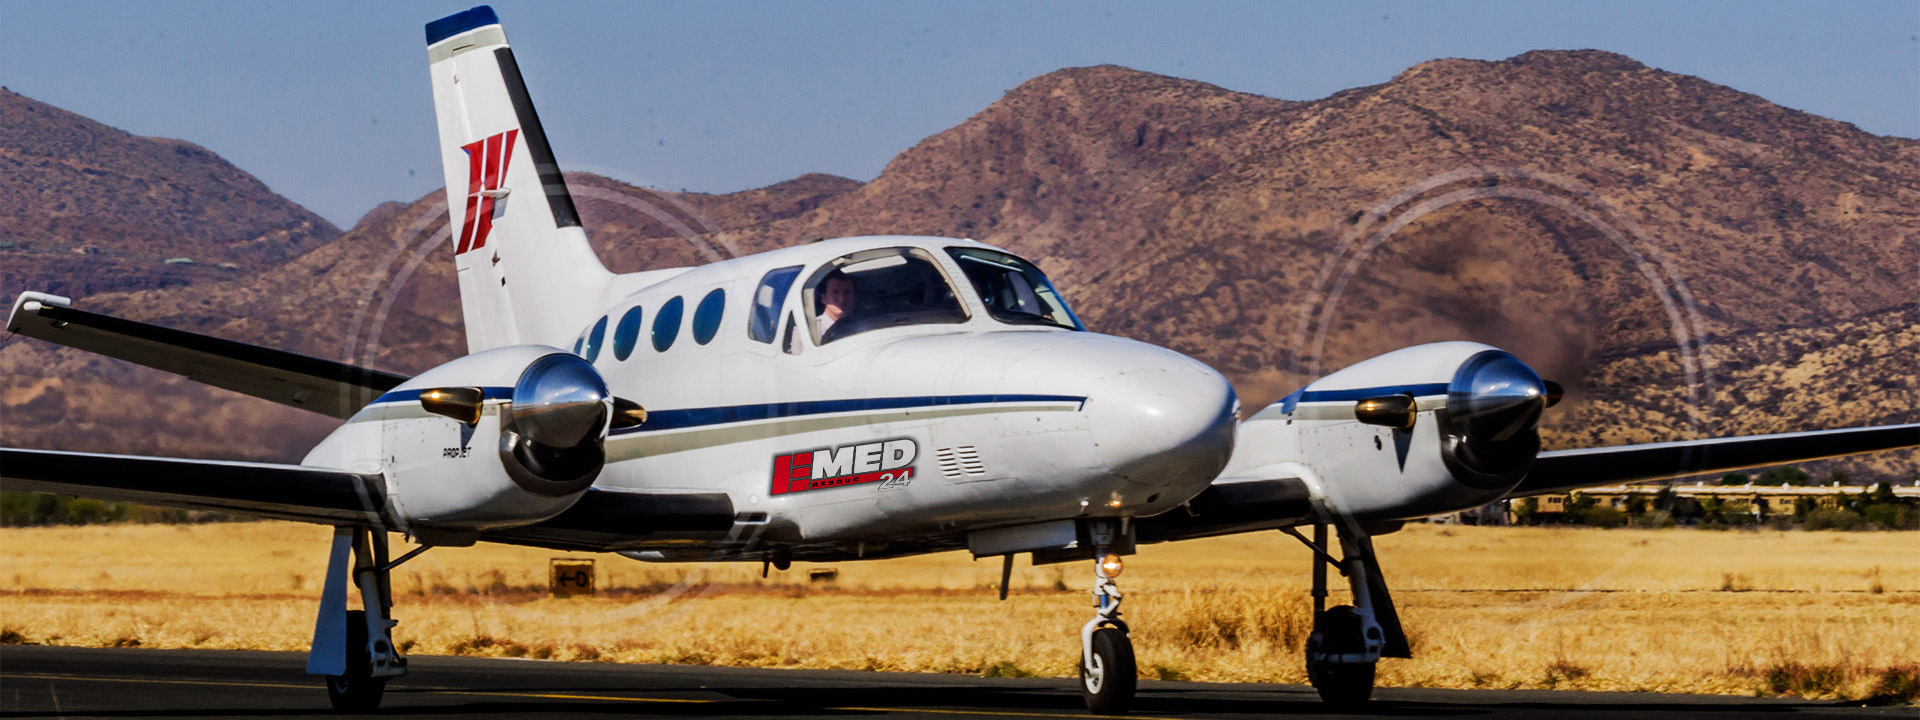 Fully Medically Equipped Air Ambulance Services